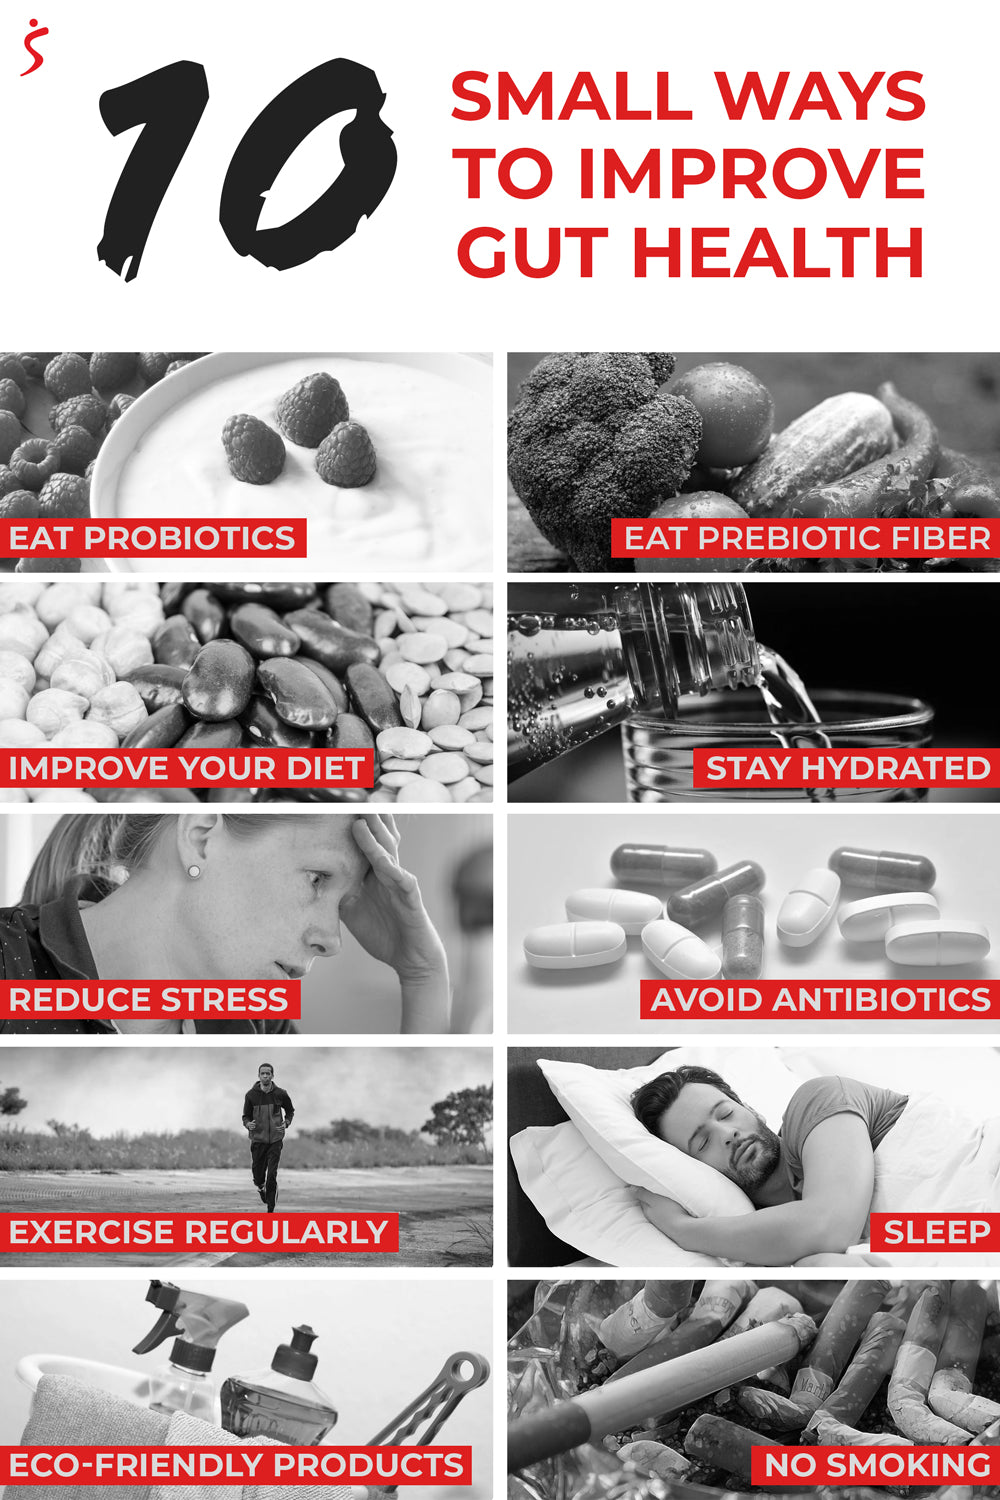 10 small ways to improve gut health collage of 10 images and tips